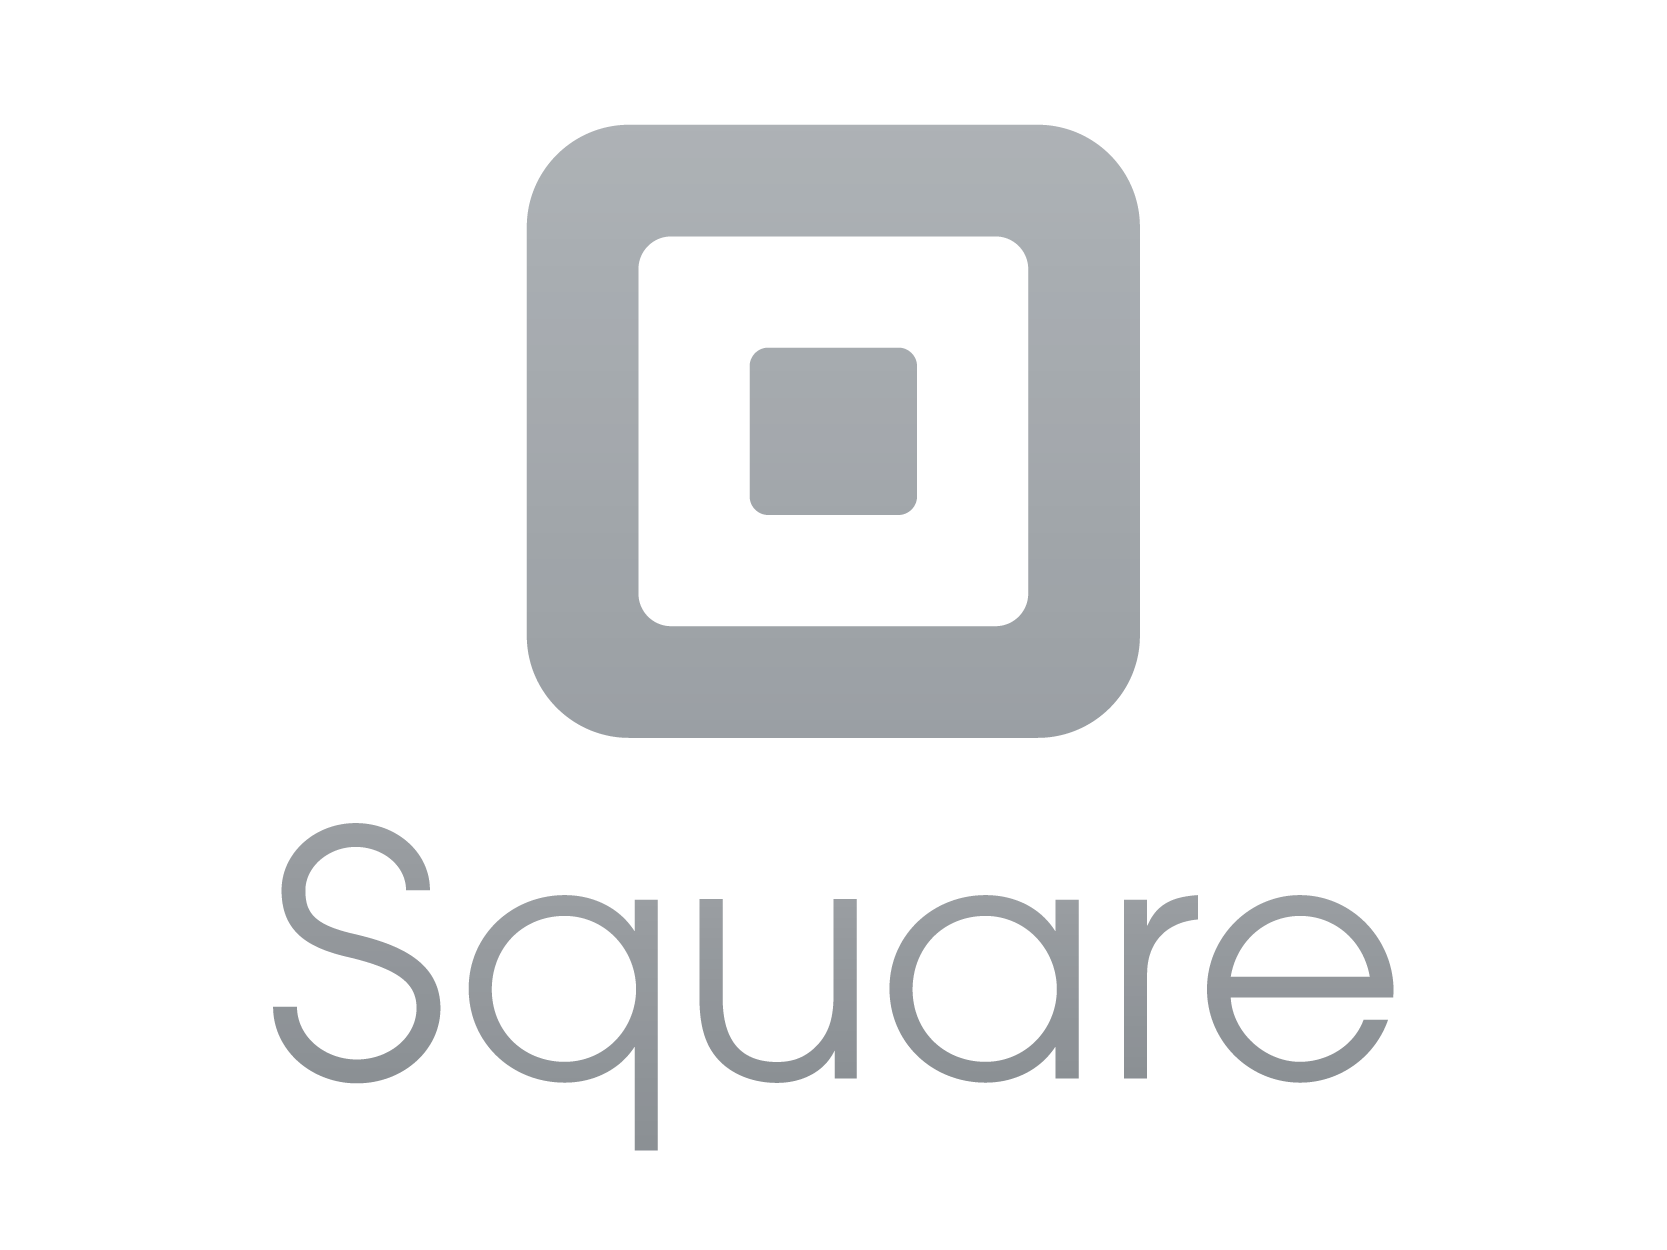 square affiliate link.png